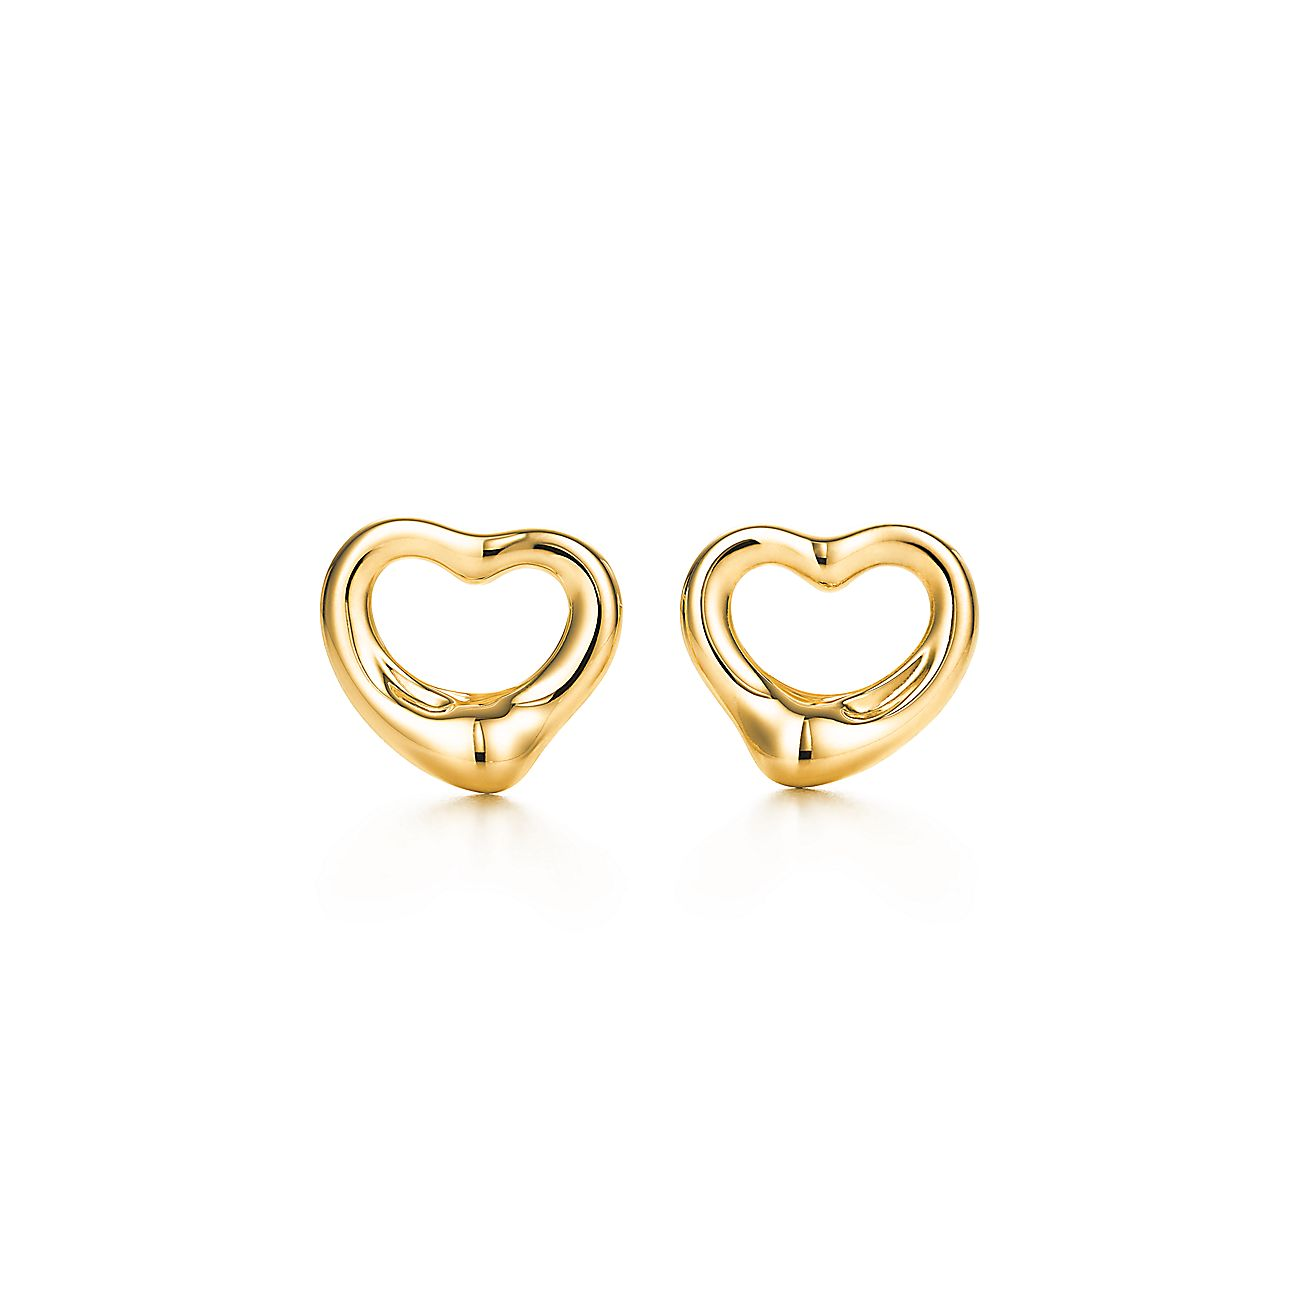 heart earrings gold - photo #25